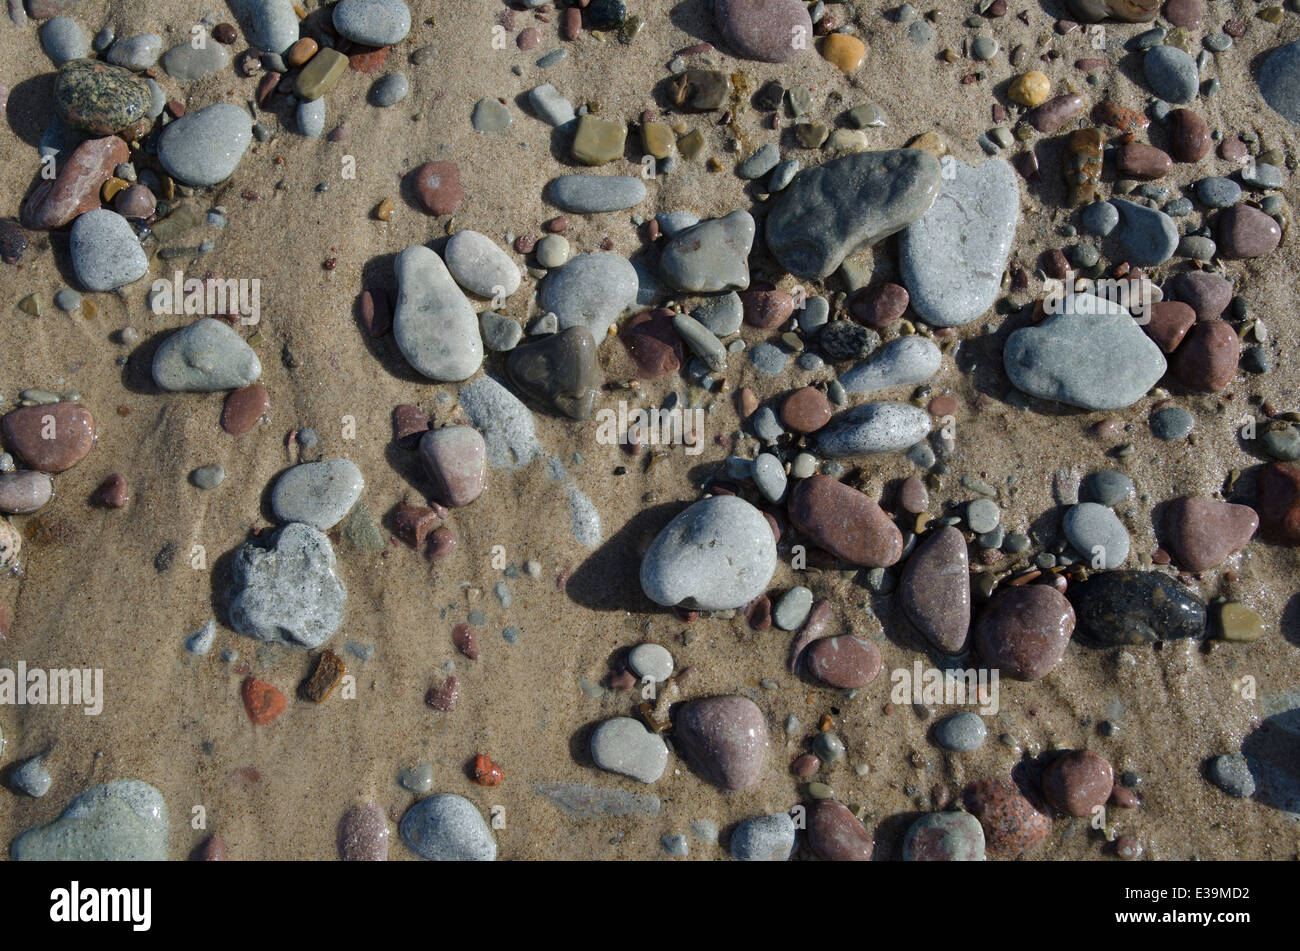 Detail of a wet sandy beach with smooth pebbles at soft lighting - Stock Image